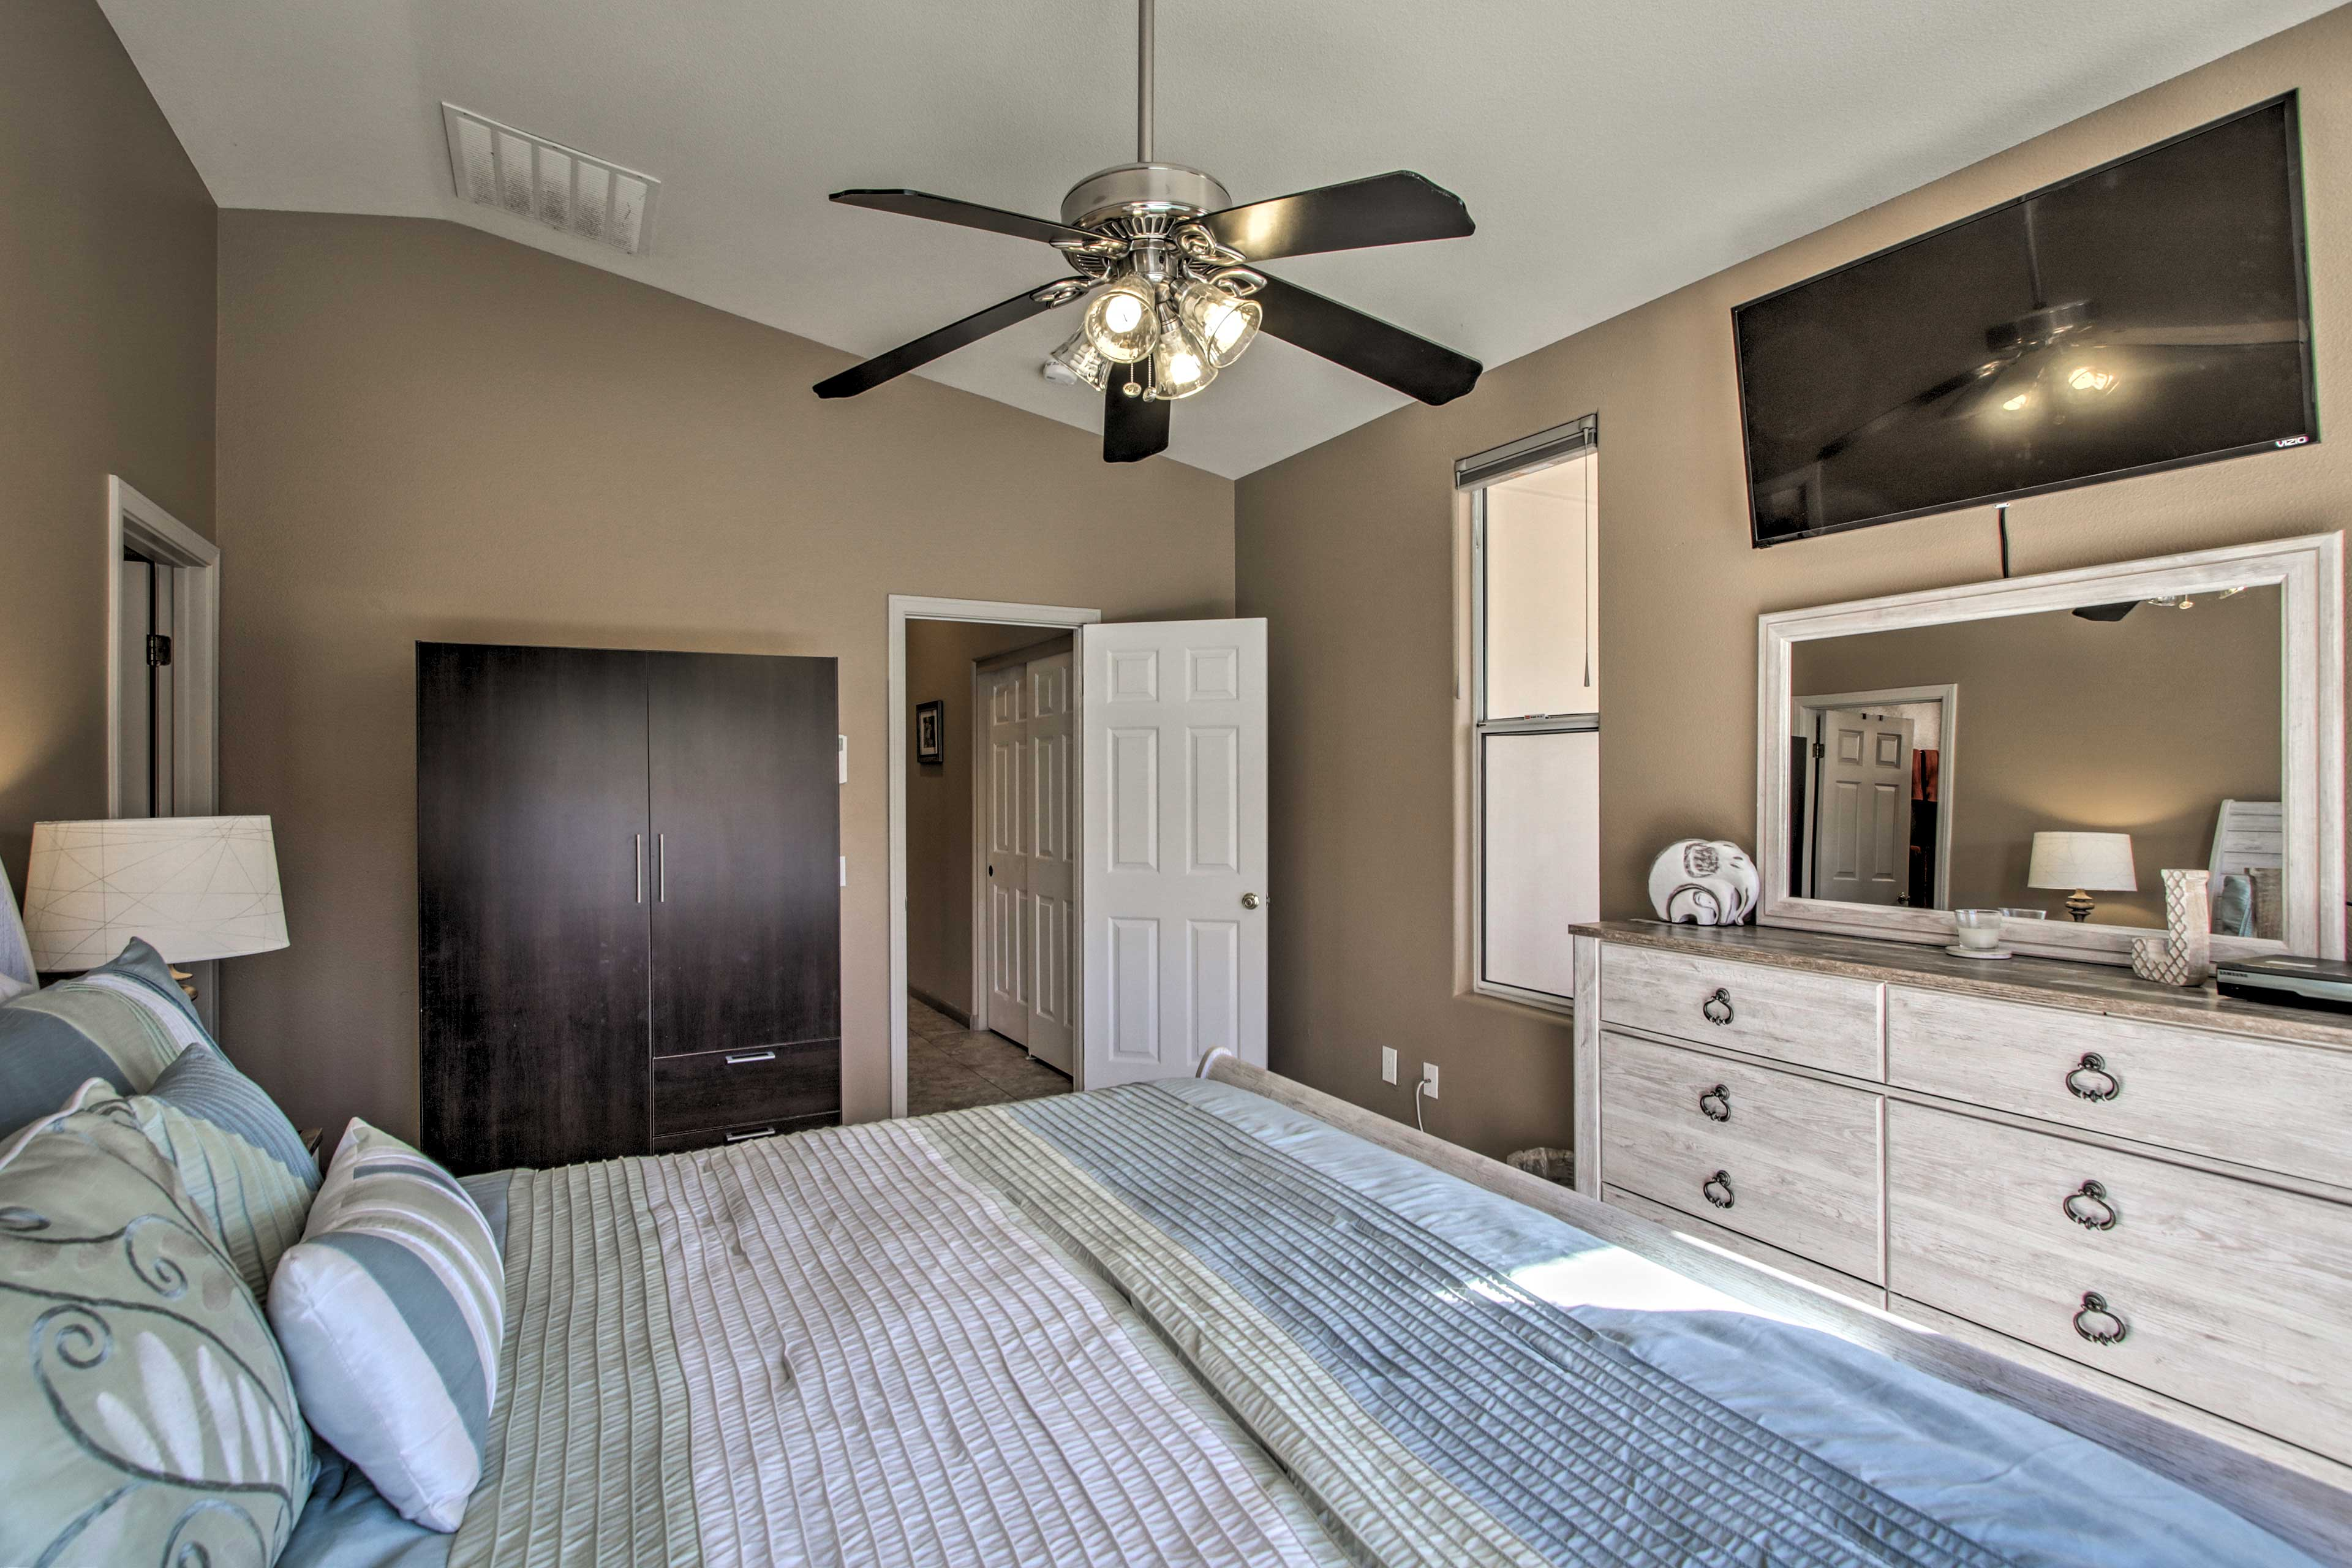 The Master Bedroom offers a flat-screen cable TV as well.